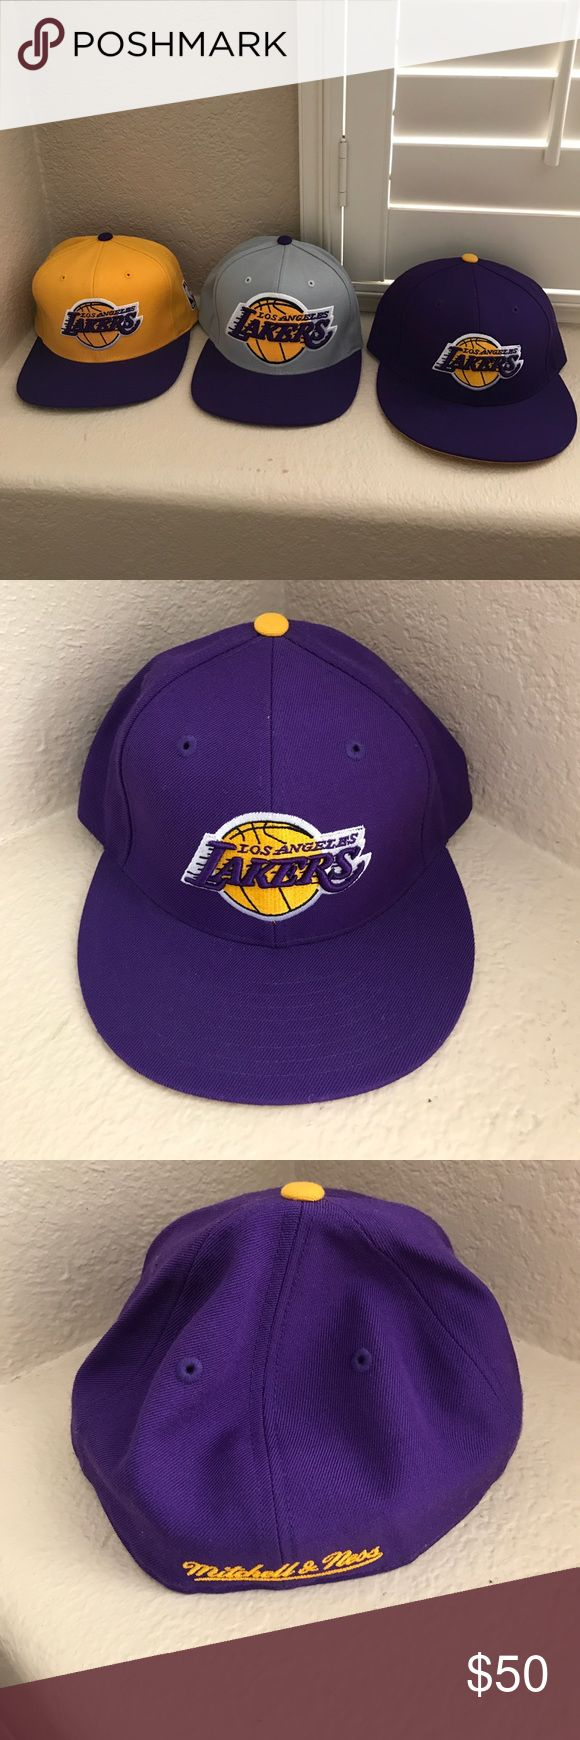 Mitchell and Ness Laker Caps Mitchell & Ness Laker Snap Back Caps and 7 & 3/8 only worn a couple of times. All three for $45 Mitchell & Ness Accessories Hats